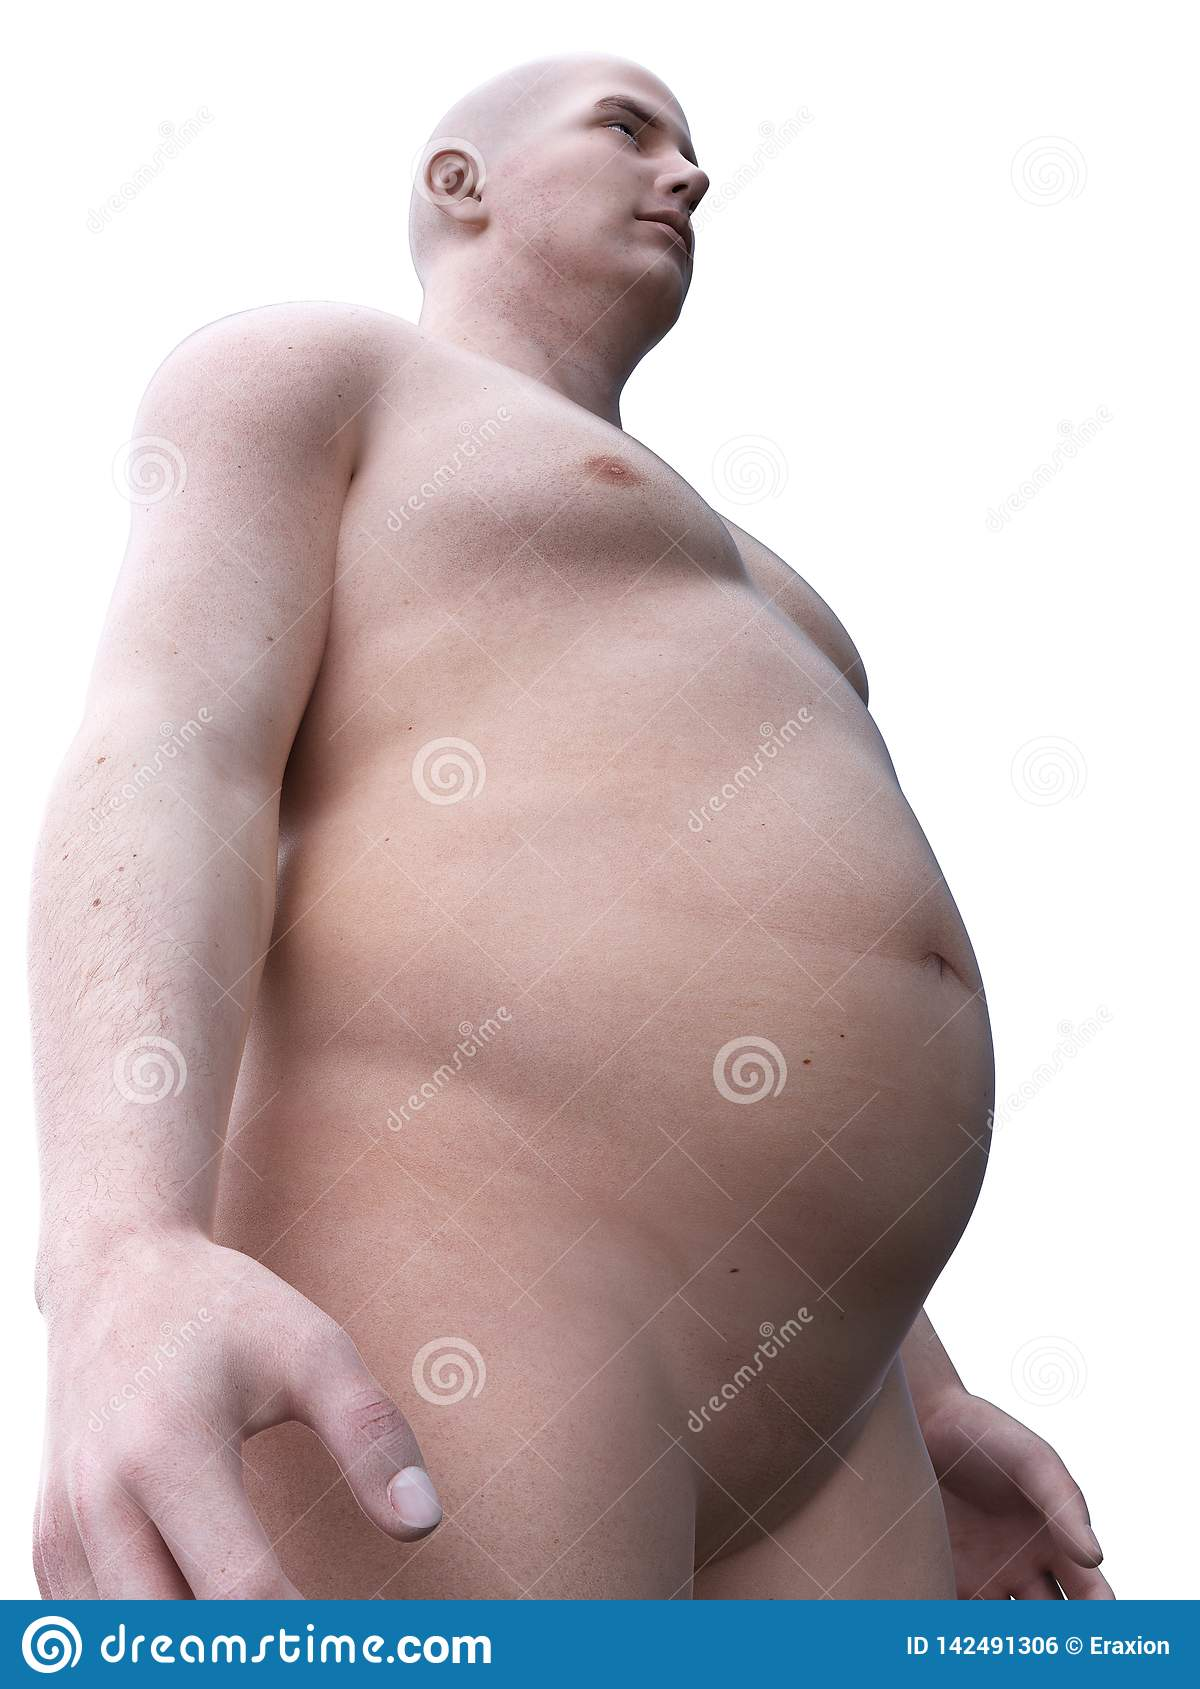 An Obese Male Stock Illustration Illustration Of Anatomical 142491306